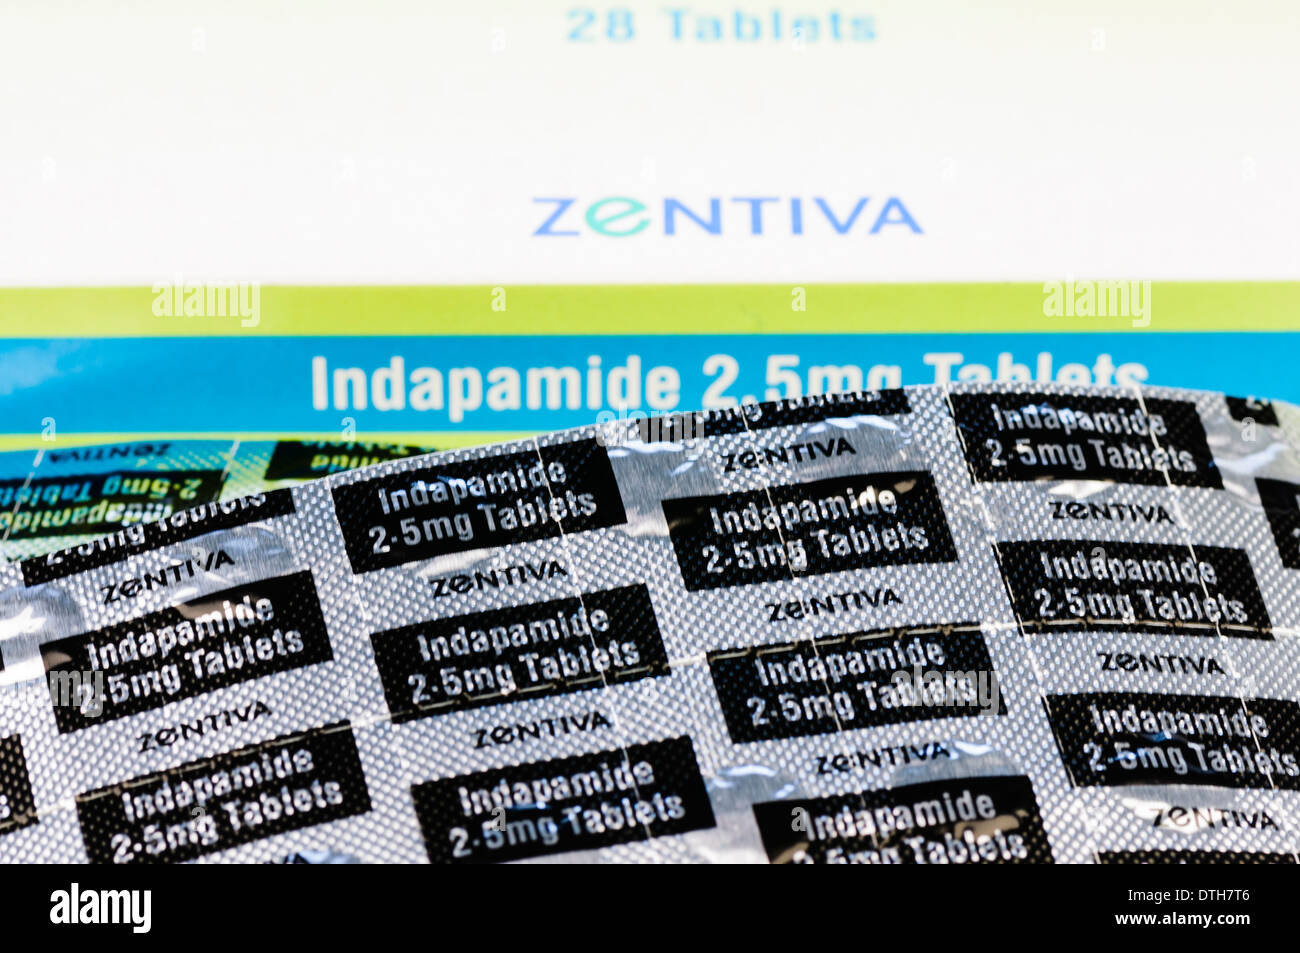 Indapamide 2.5mg tablets, a diuretic (water tablet) used in the treatment of high blood pressure. - Stock Image